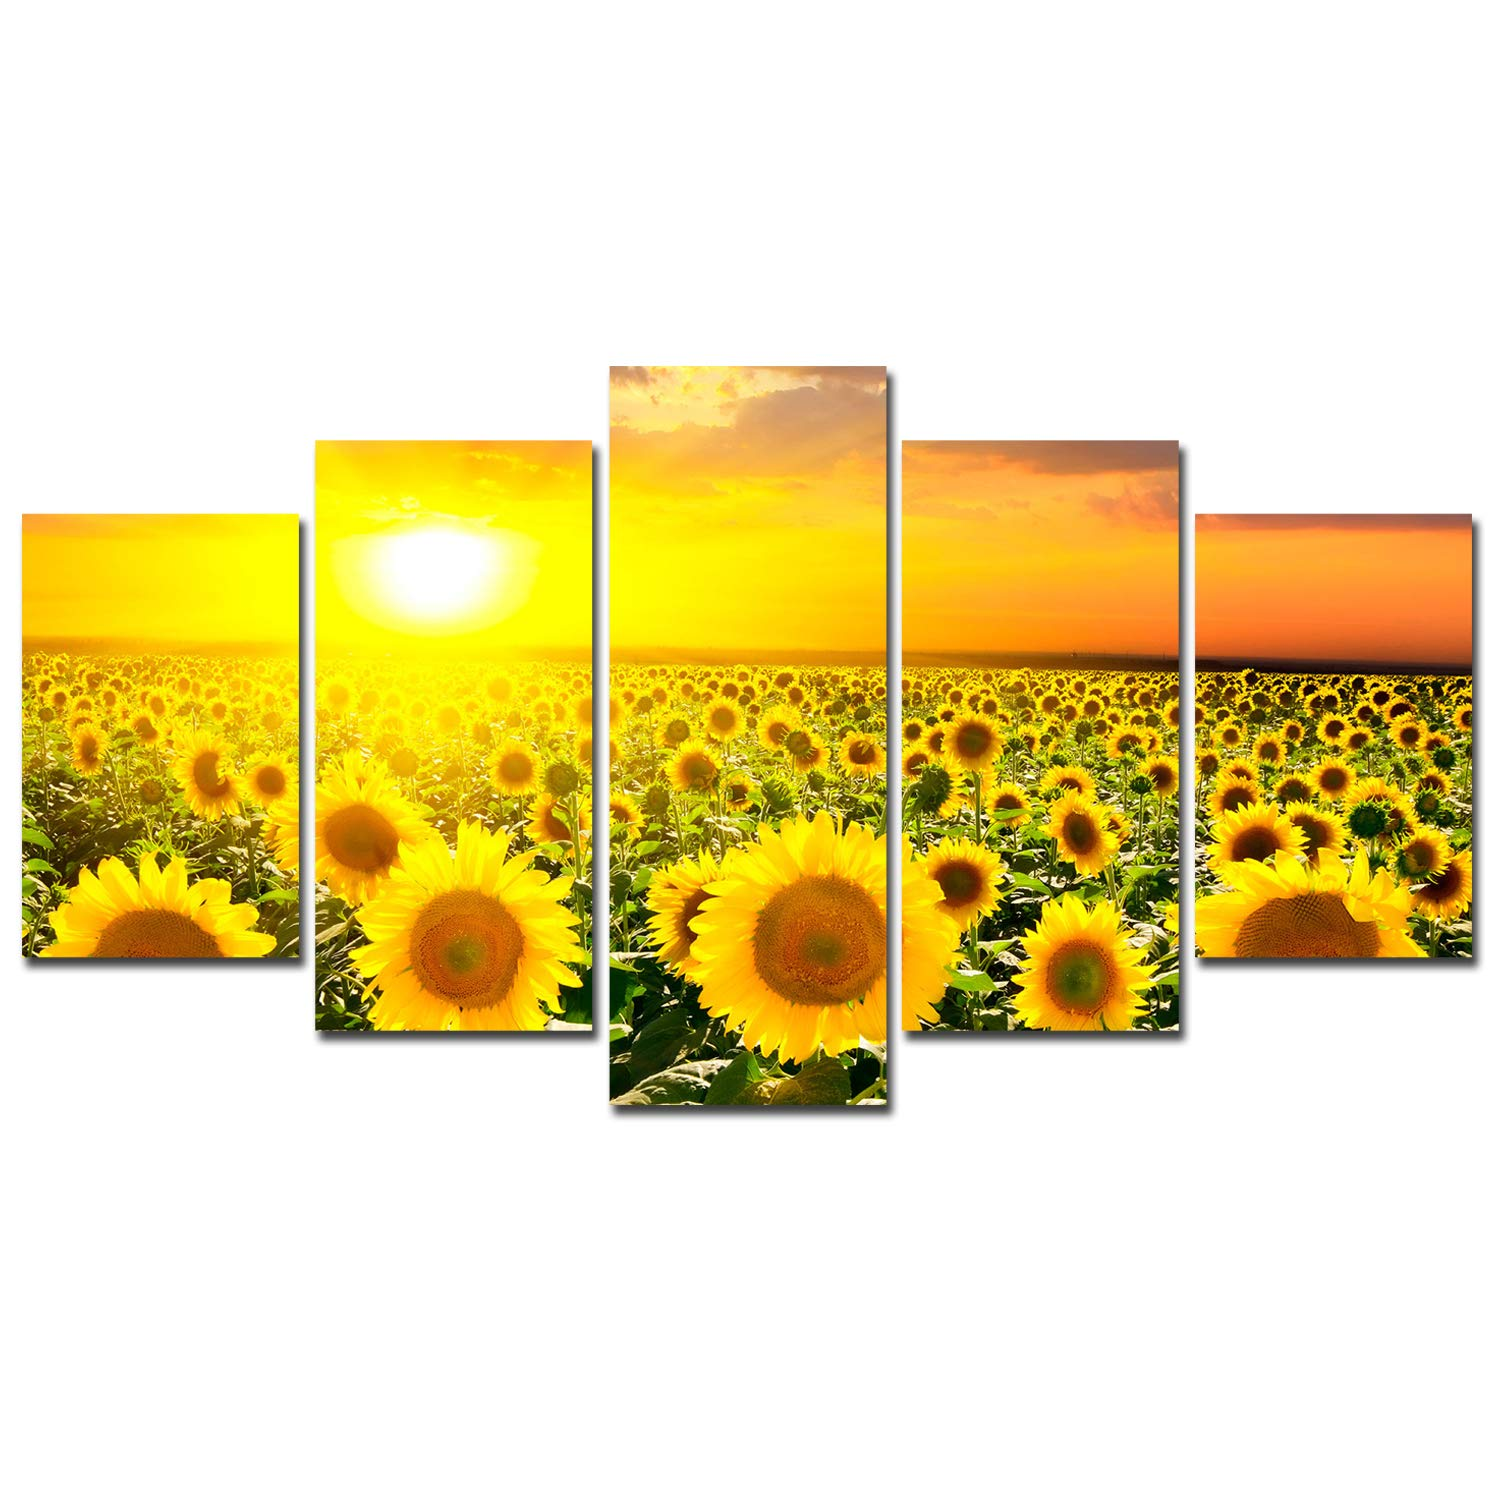 Sunflower Decoration Canvas Wall Art - Sunset Flowers Landscape Poster Home Decor for Living Room Framed Canvas Painting 5 Panels Modern Pictures Floral Art Print Set Rustic Family Kitchen Artwork